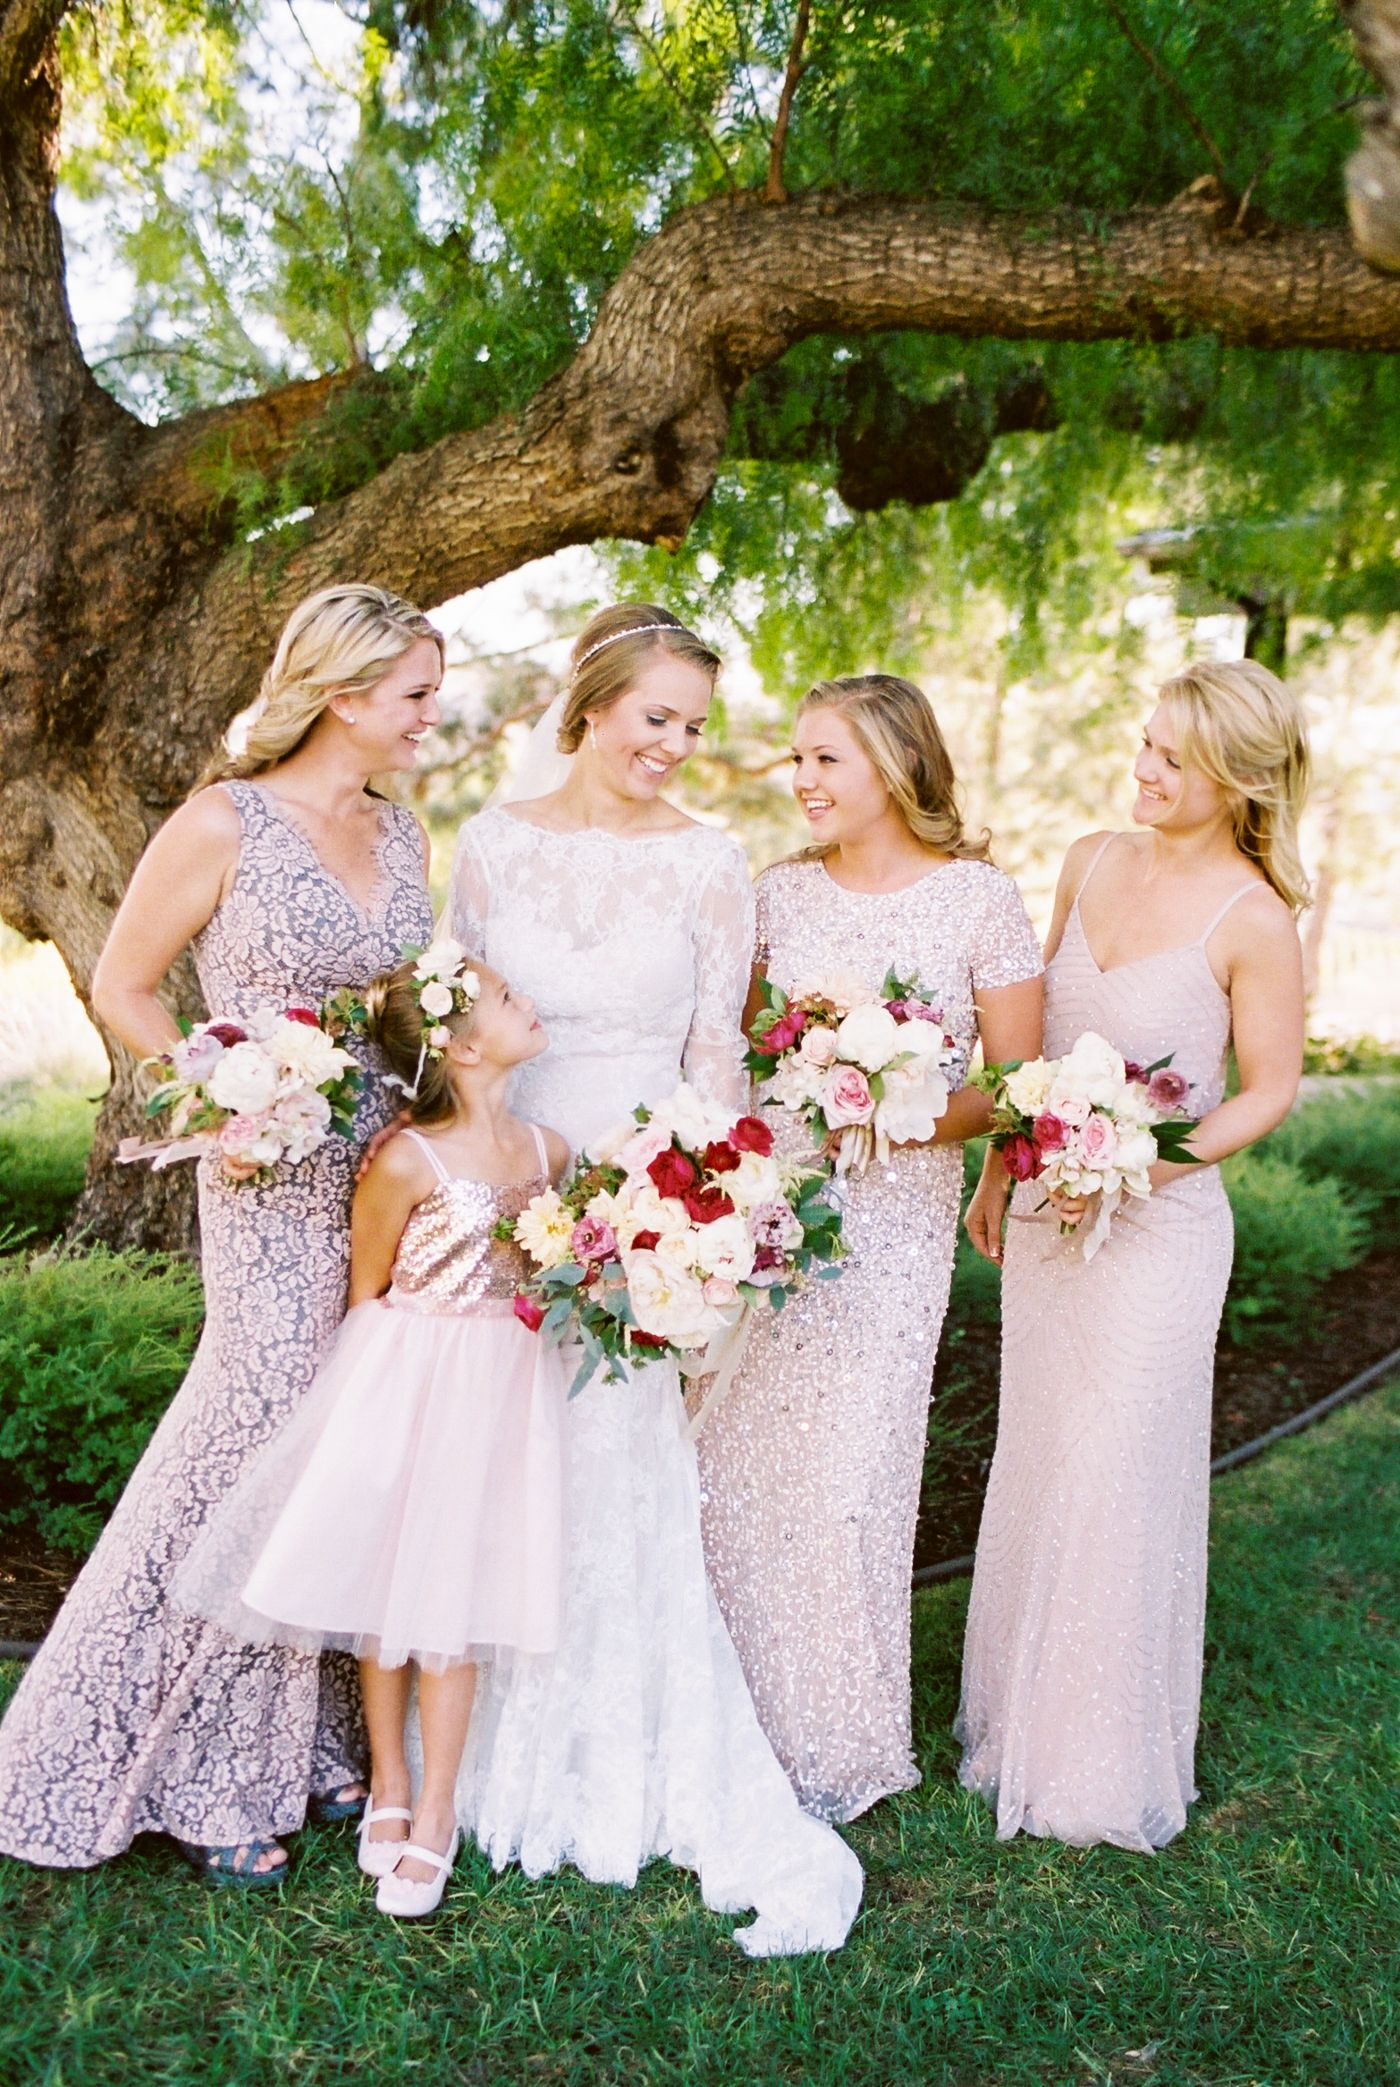 Dress for barn wedding  California Barn Wedding at Greengate Ranch u Vineyard  Vineyard